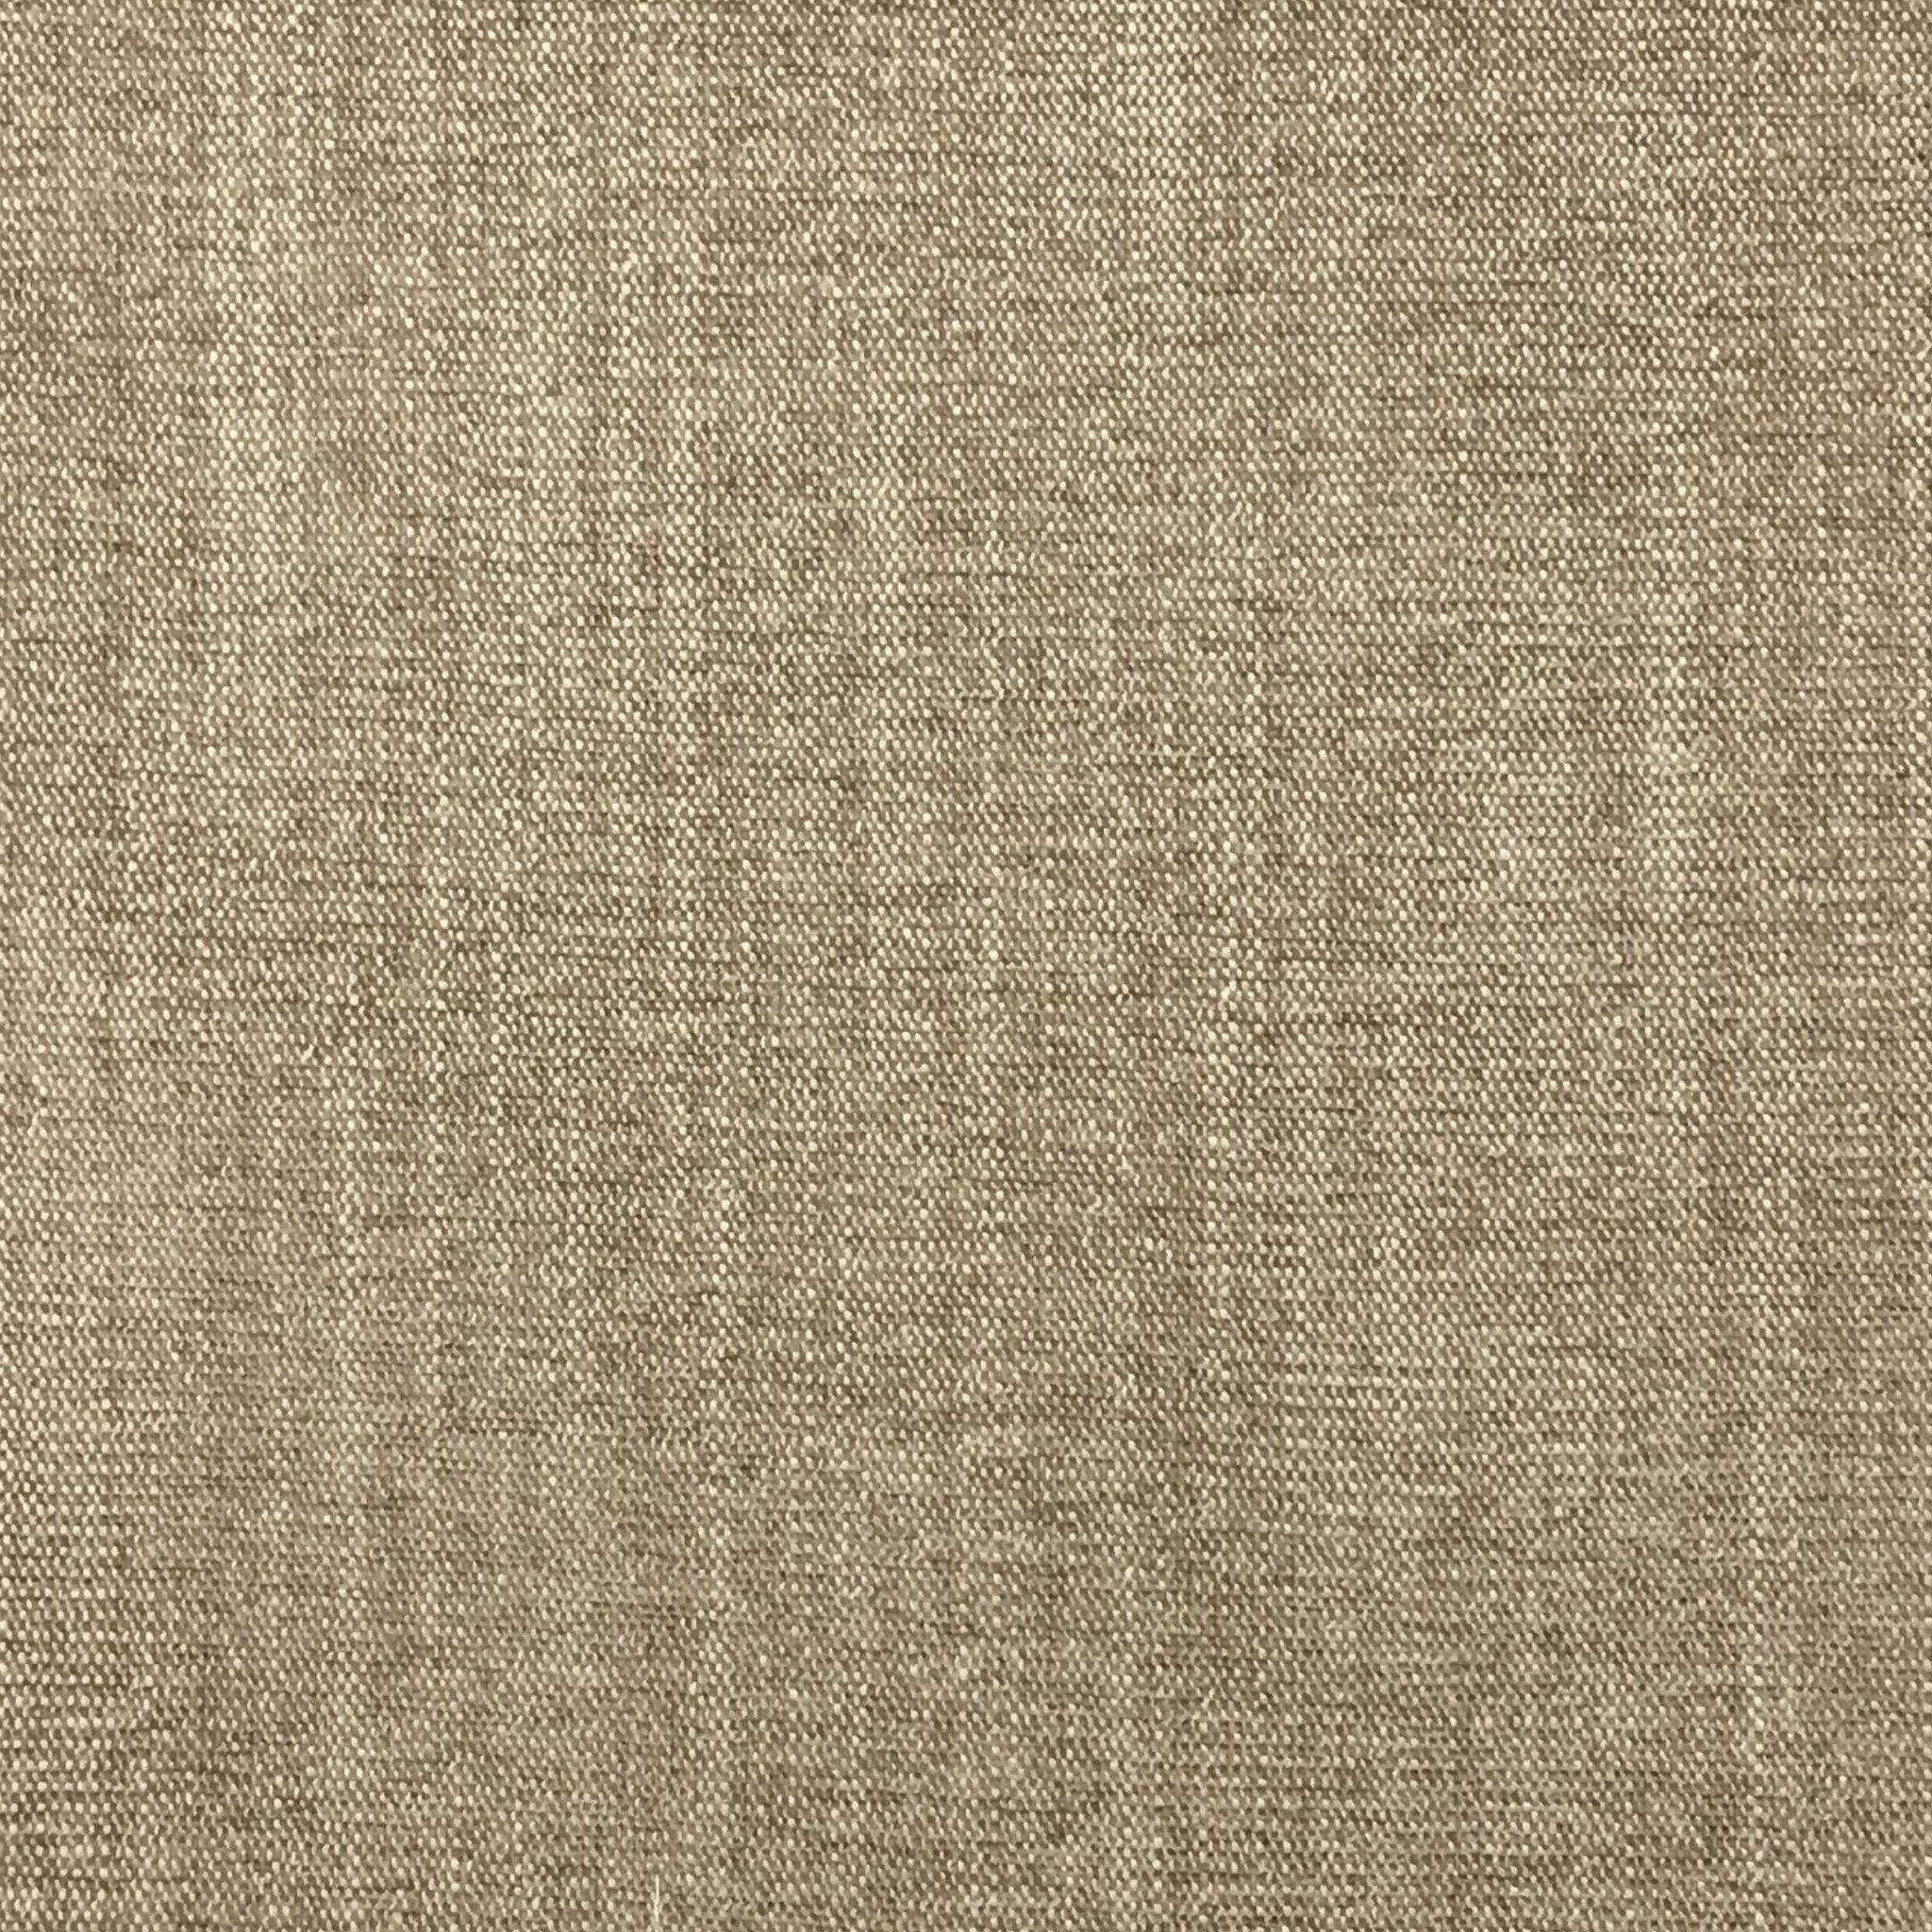 Bronson linen blend textured chenille upholstery fabric for Furnishing fabrics